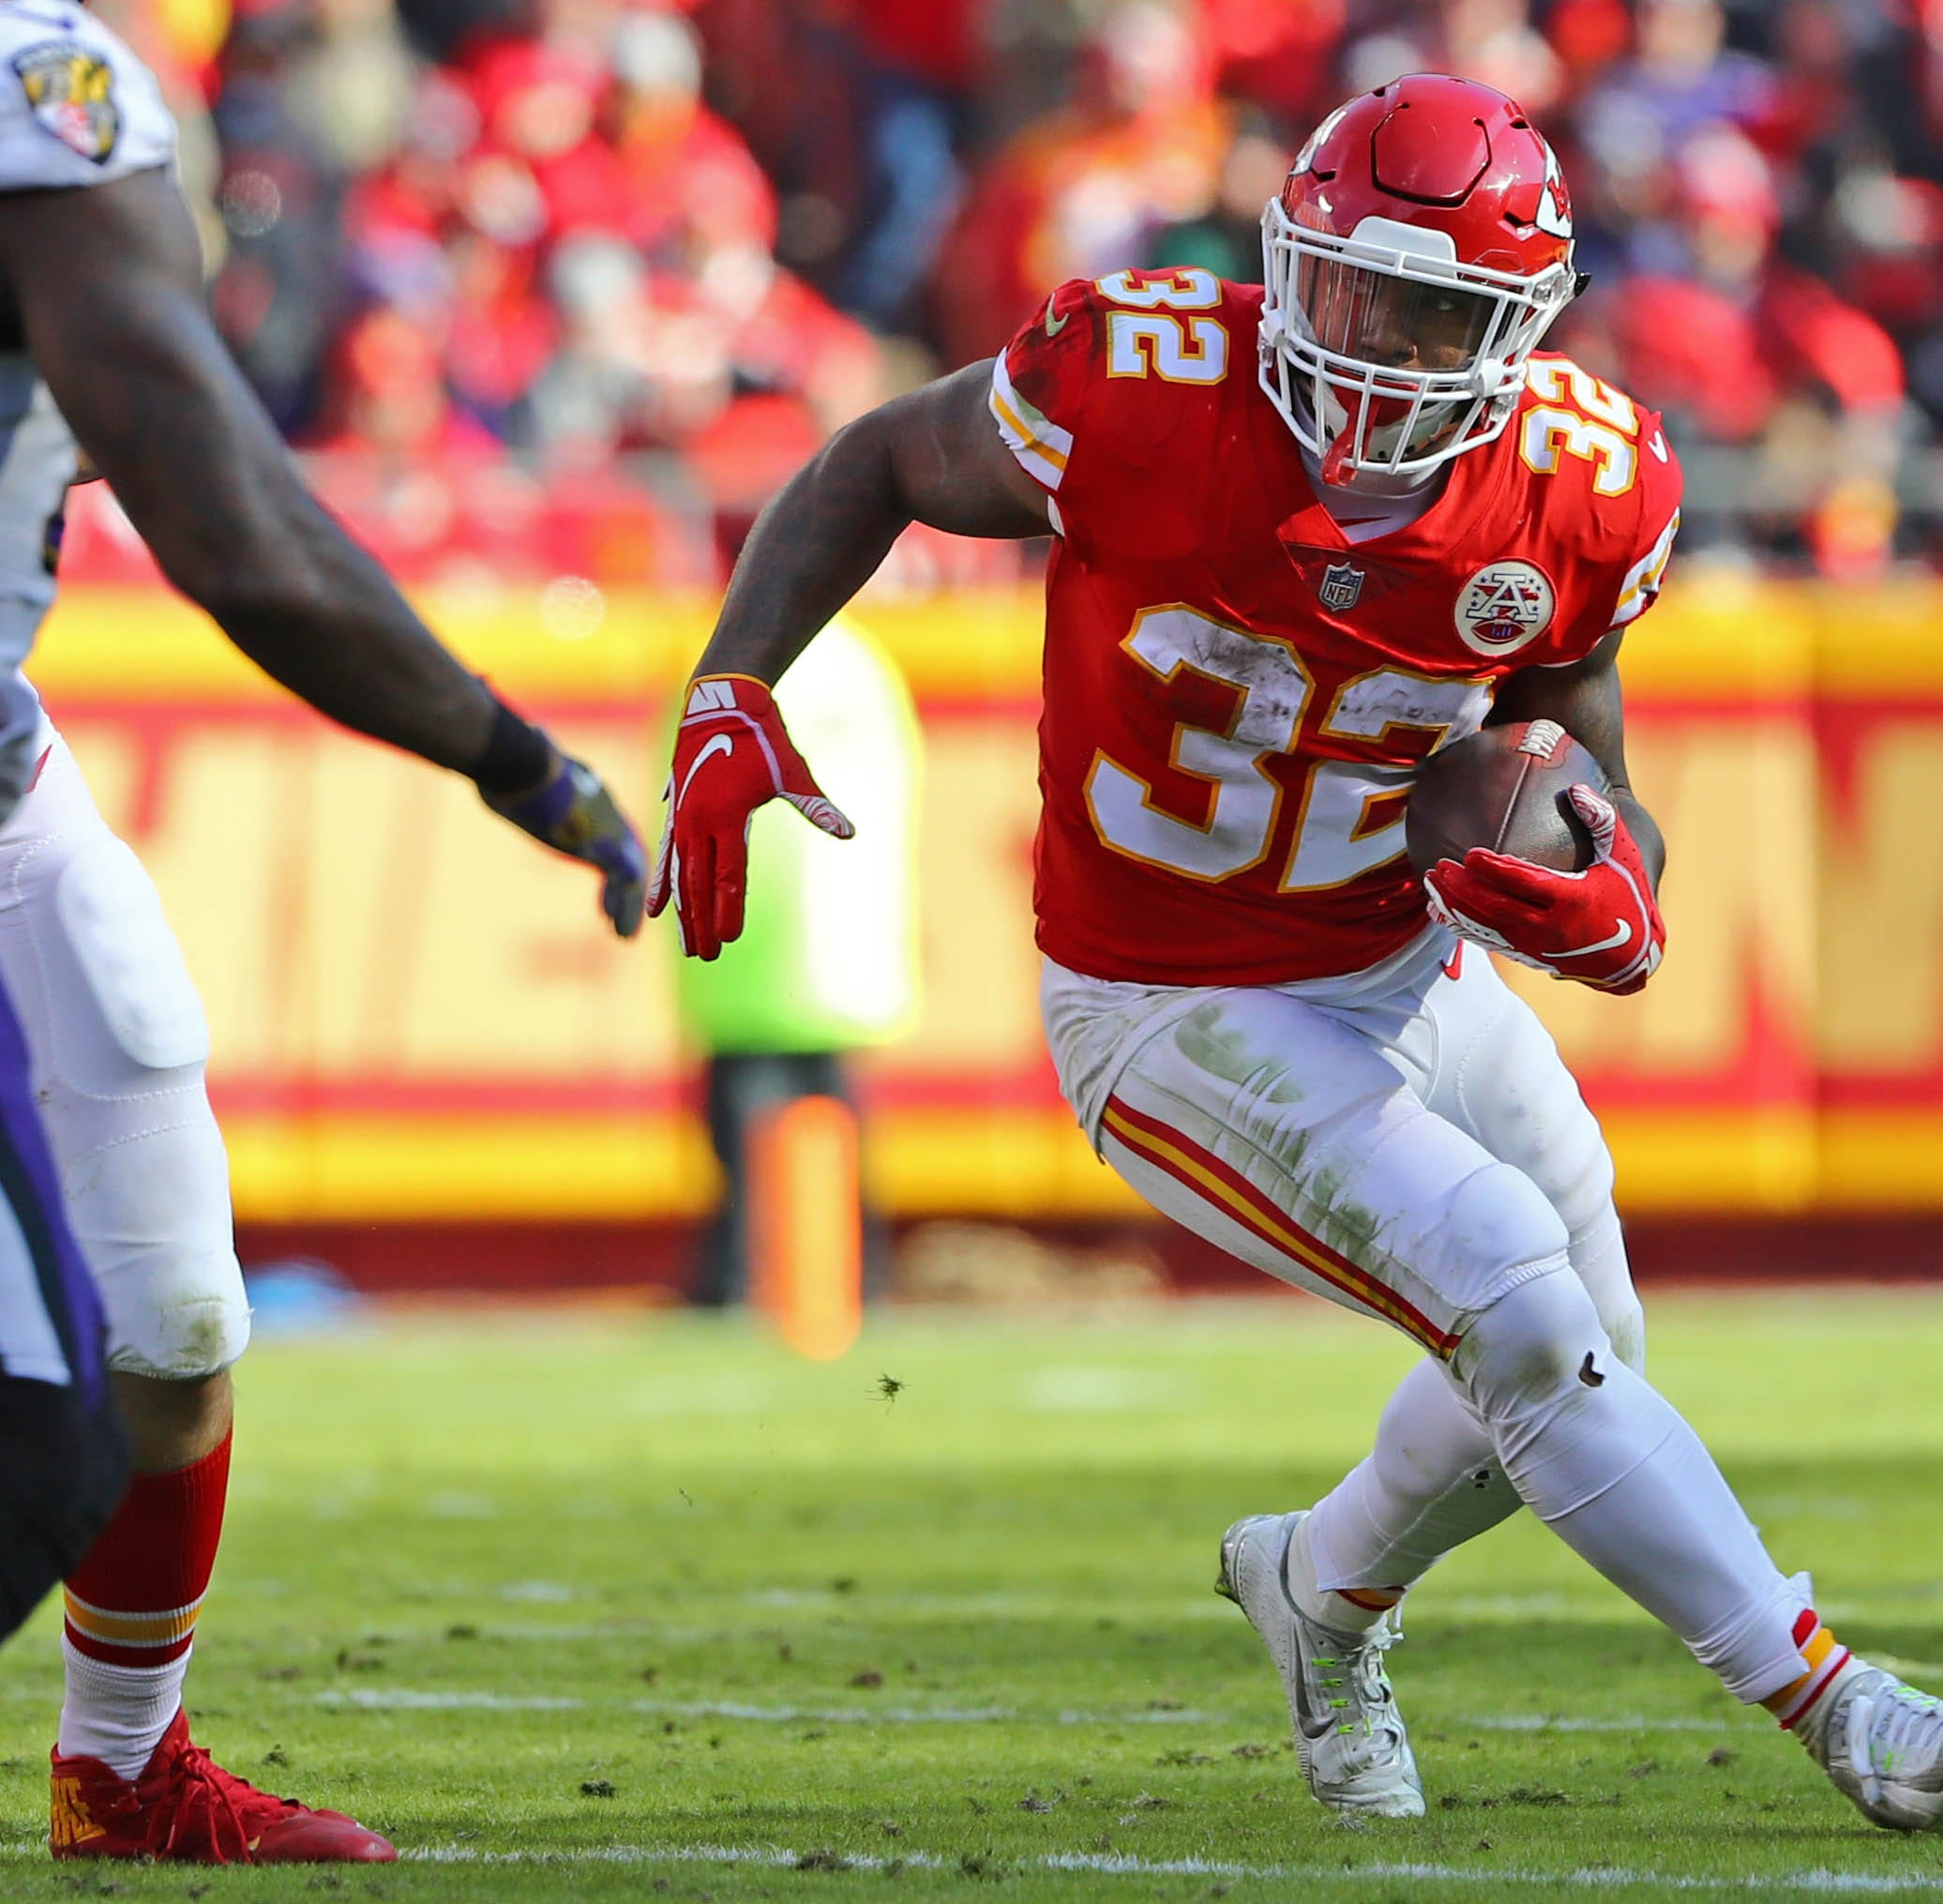 Colts add veteran Chiefs running back Spencer Ware to offense